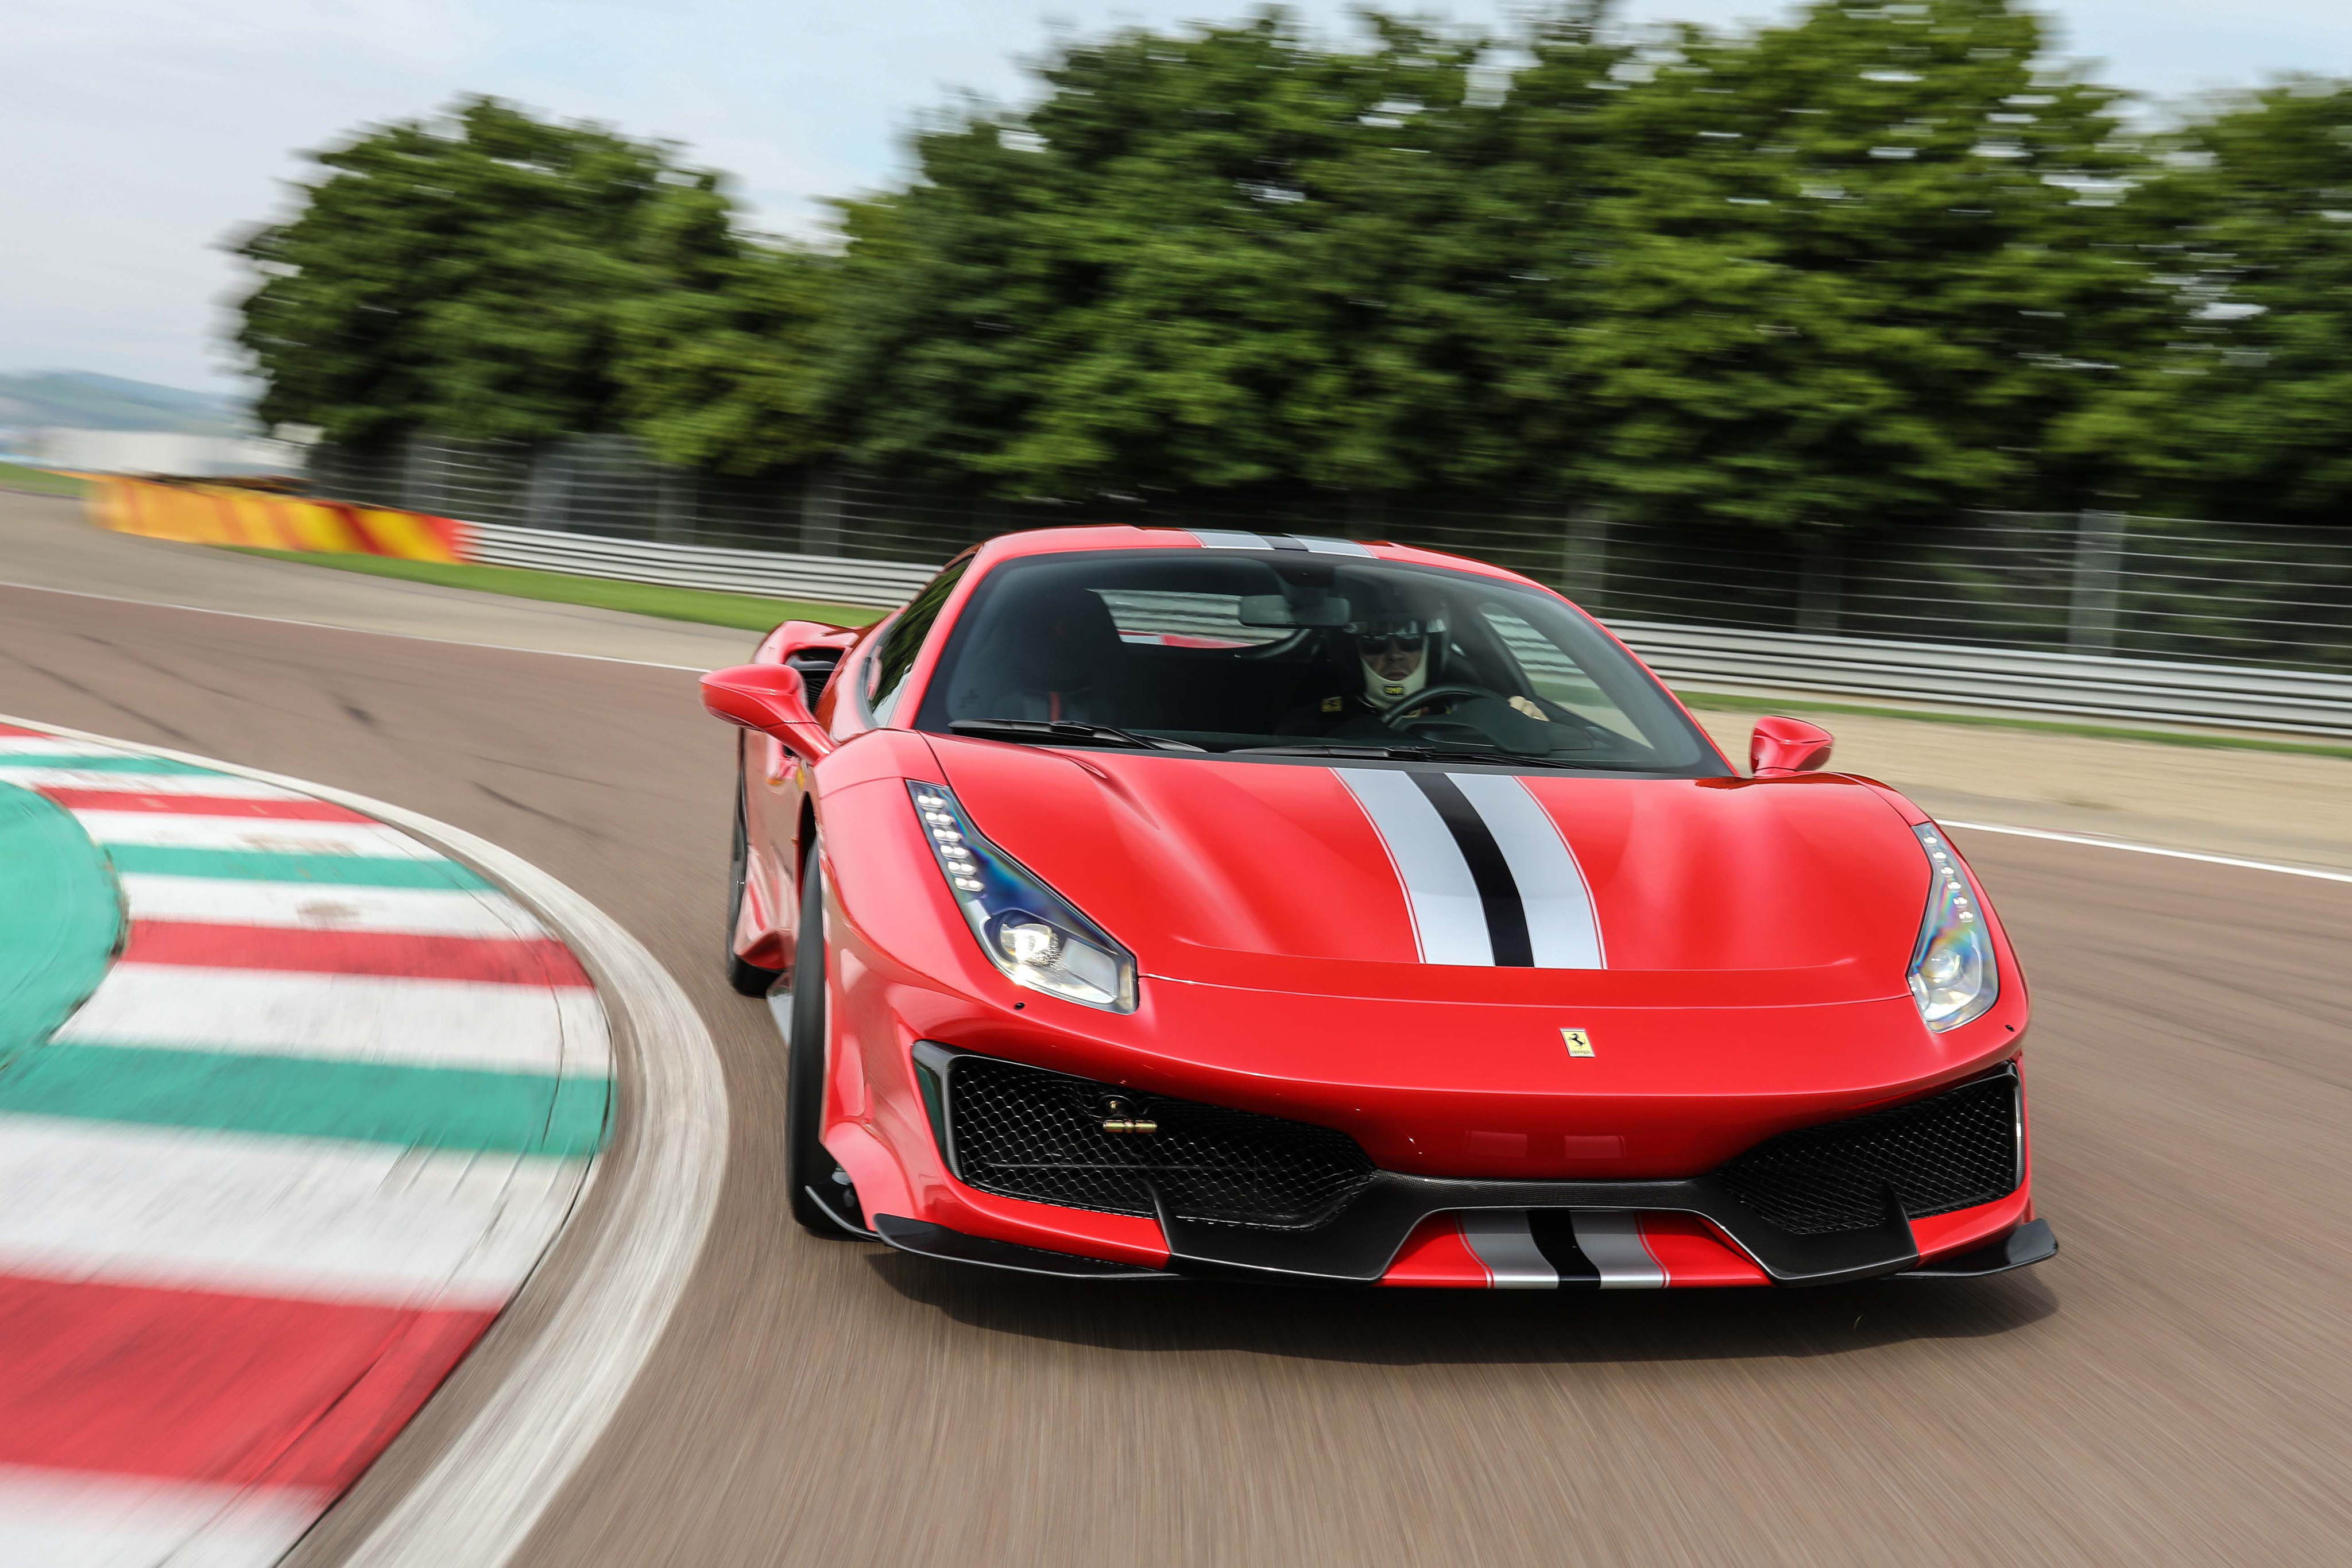 Ferrari 488 Pista On Track 4k Hd Cars 4k Wallpapers